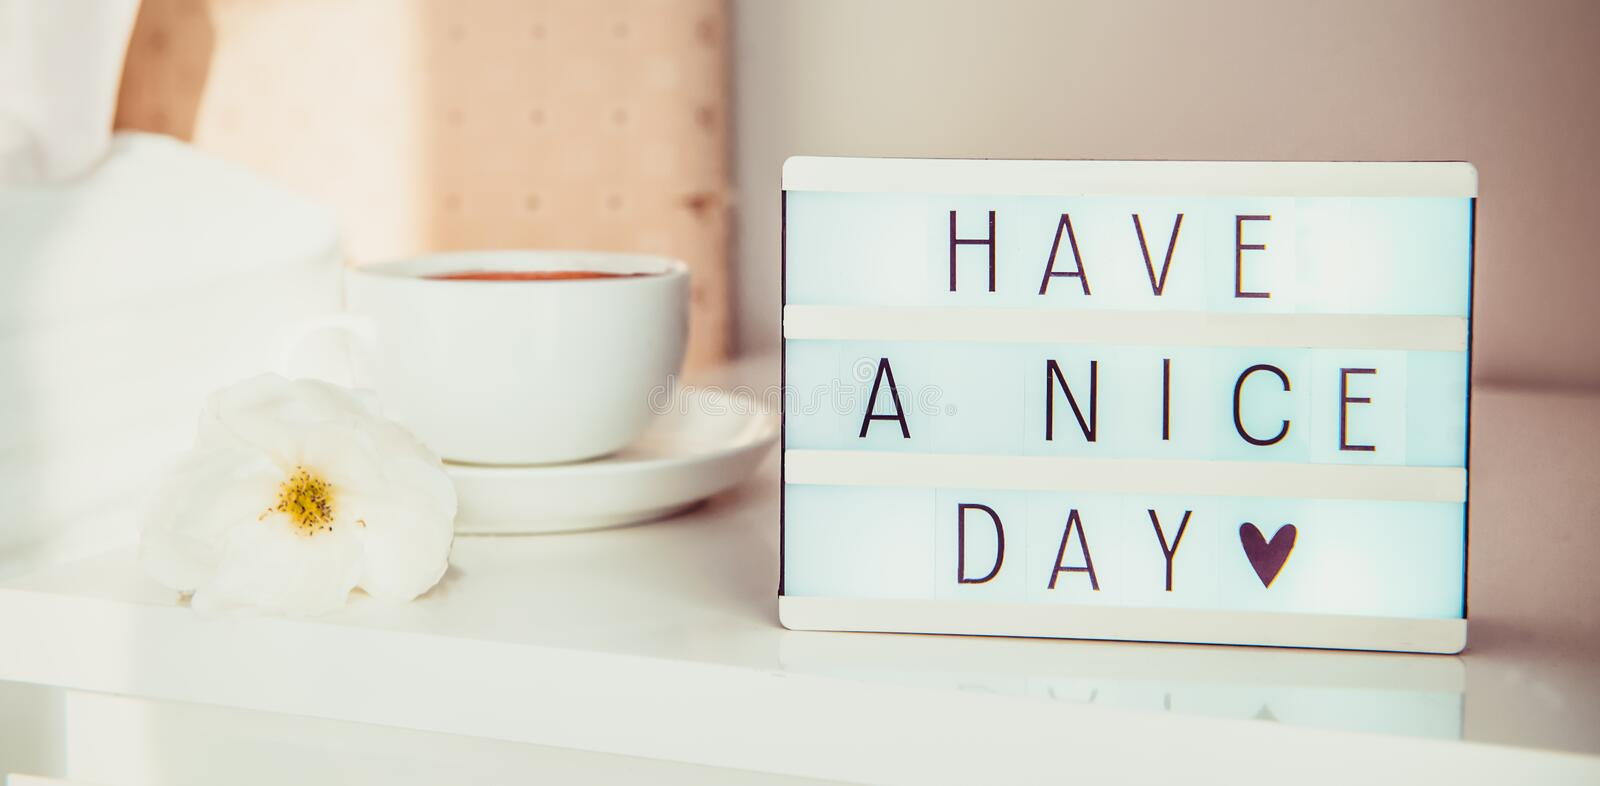 Close up Have a nice day text message on lighted box, cup of coffee and white flower on the bedside table in sun light. Good. Morning mood. Hospitality, care royalty free stock photos